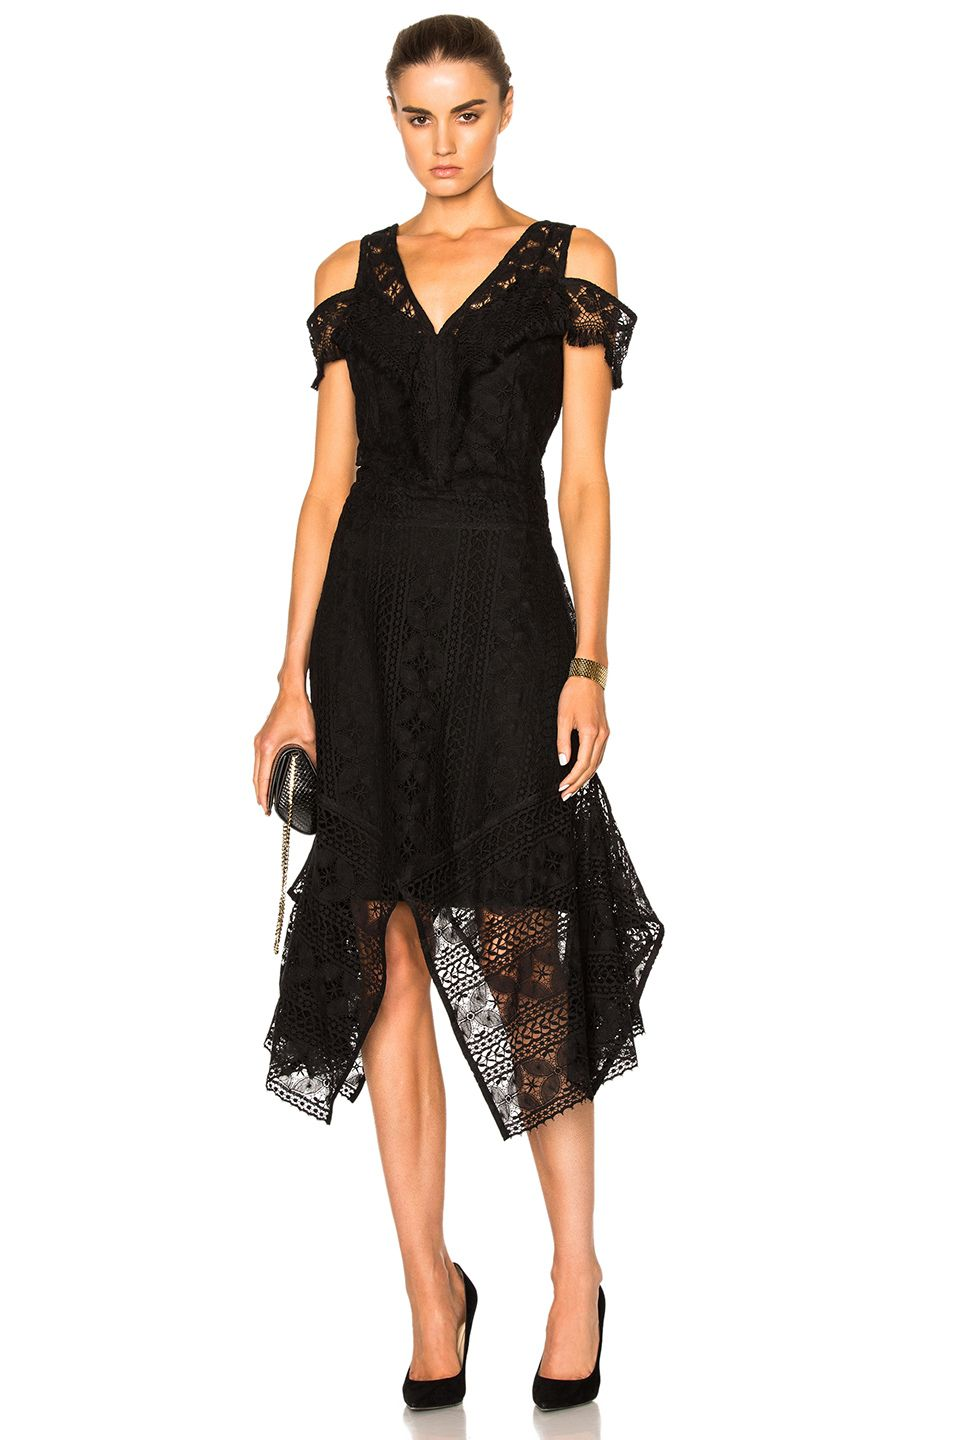 Image of rodebjer ranaja lace dress in black my style